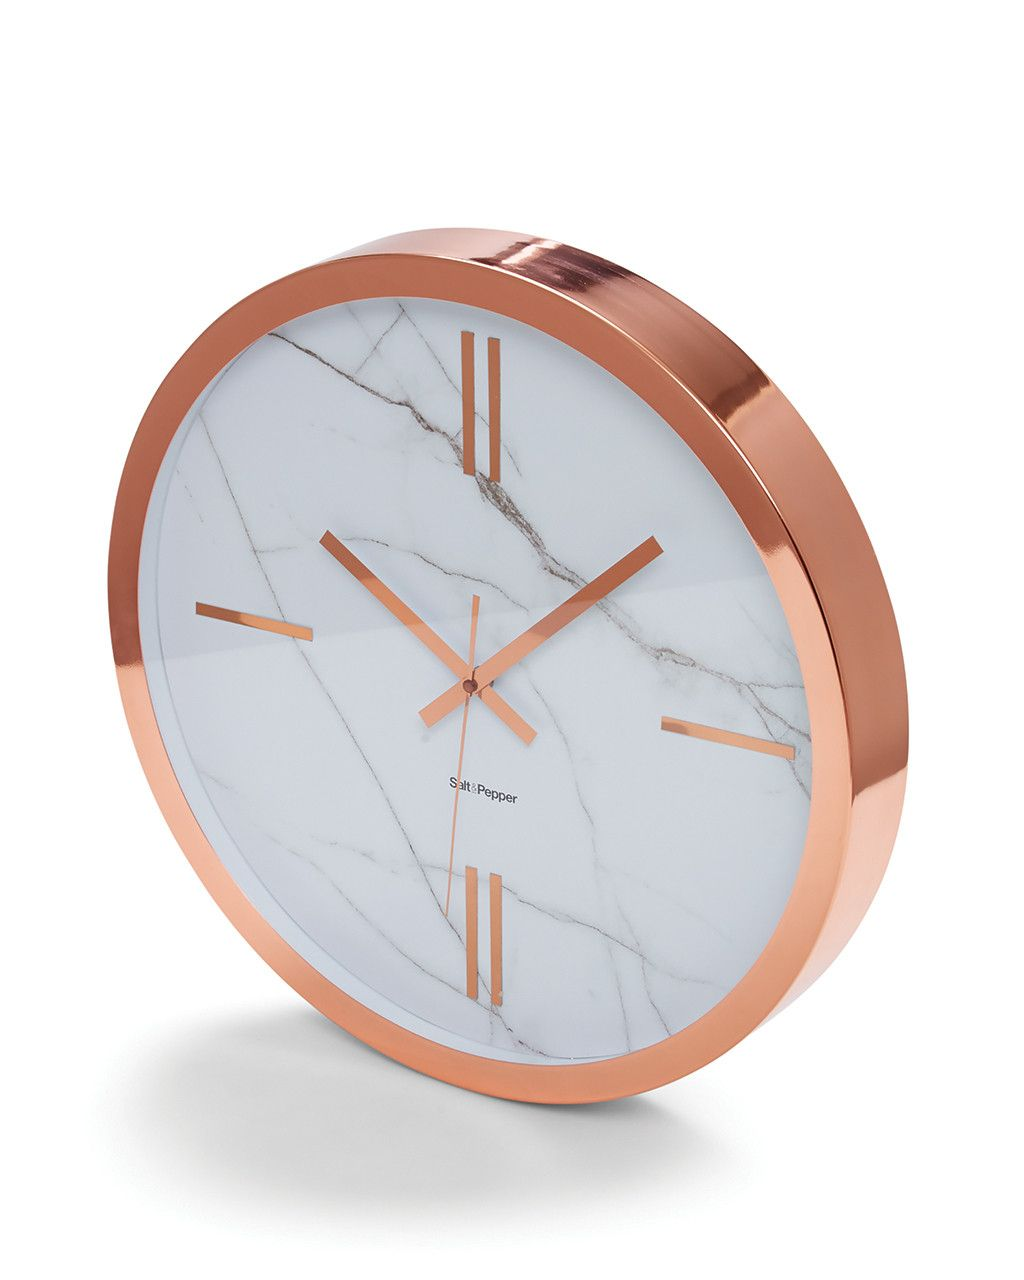 S Amp P Zone Rose Gold Clock 45cm Copper Gold Bedroom